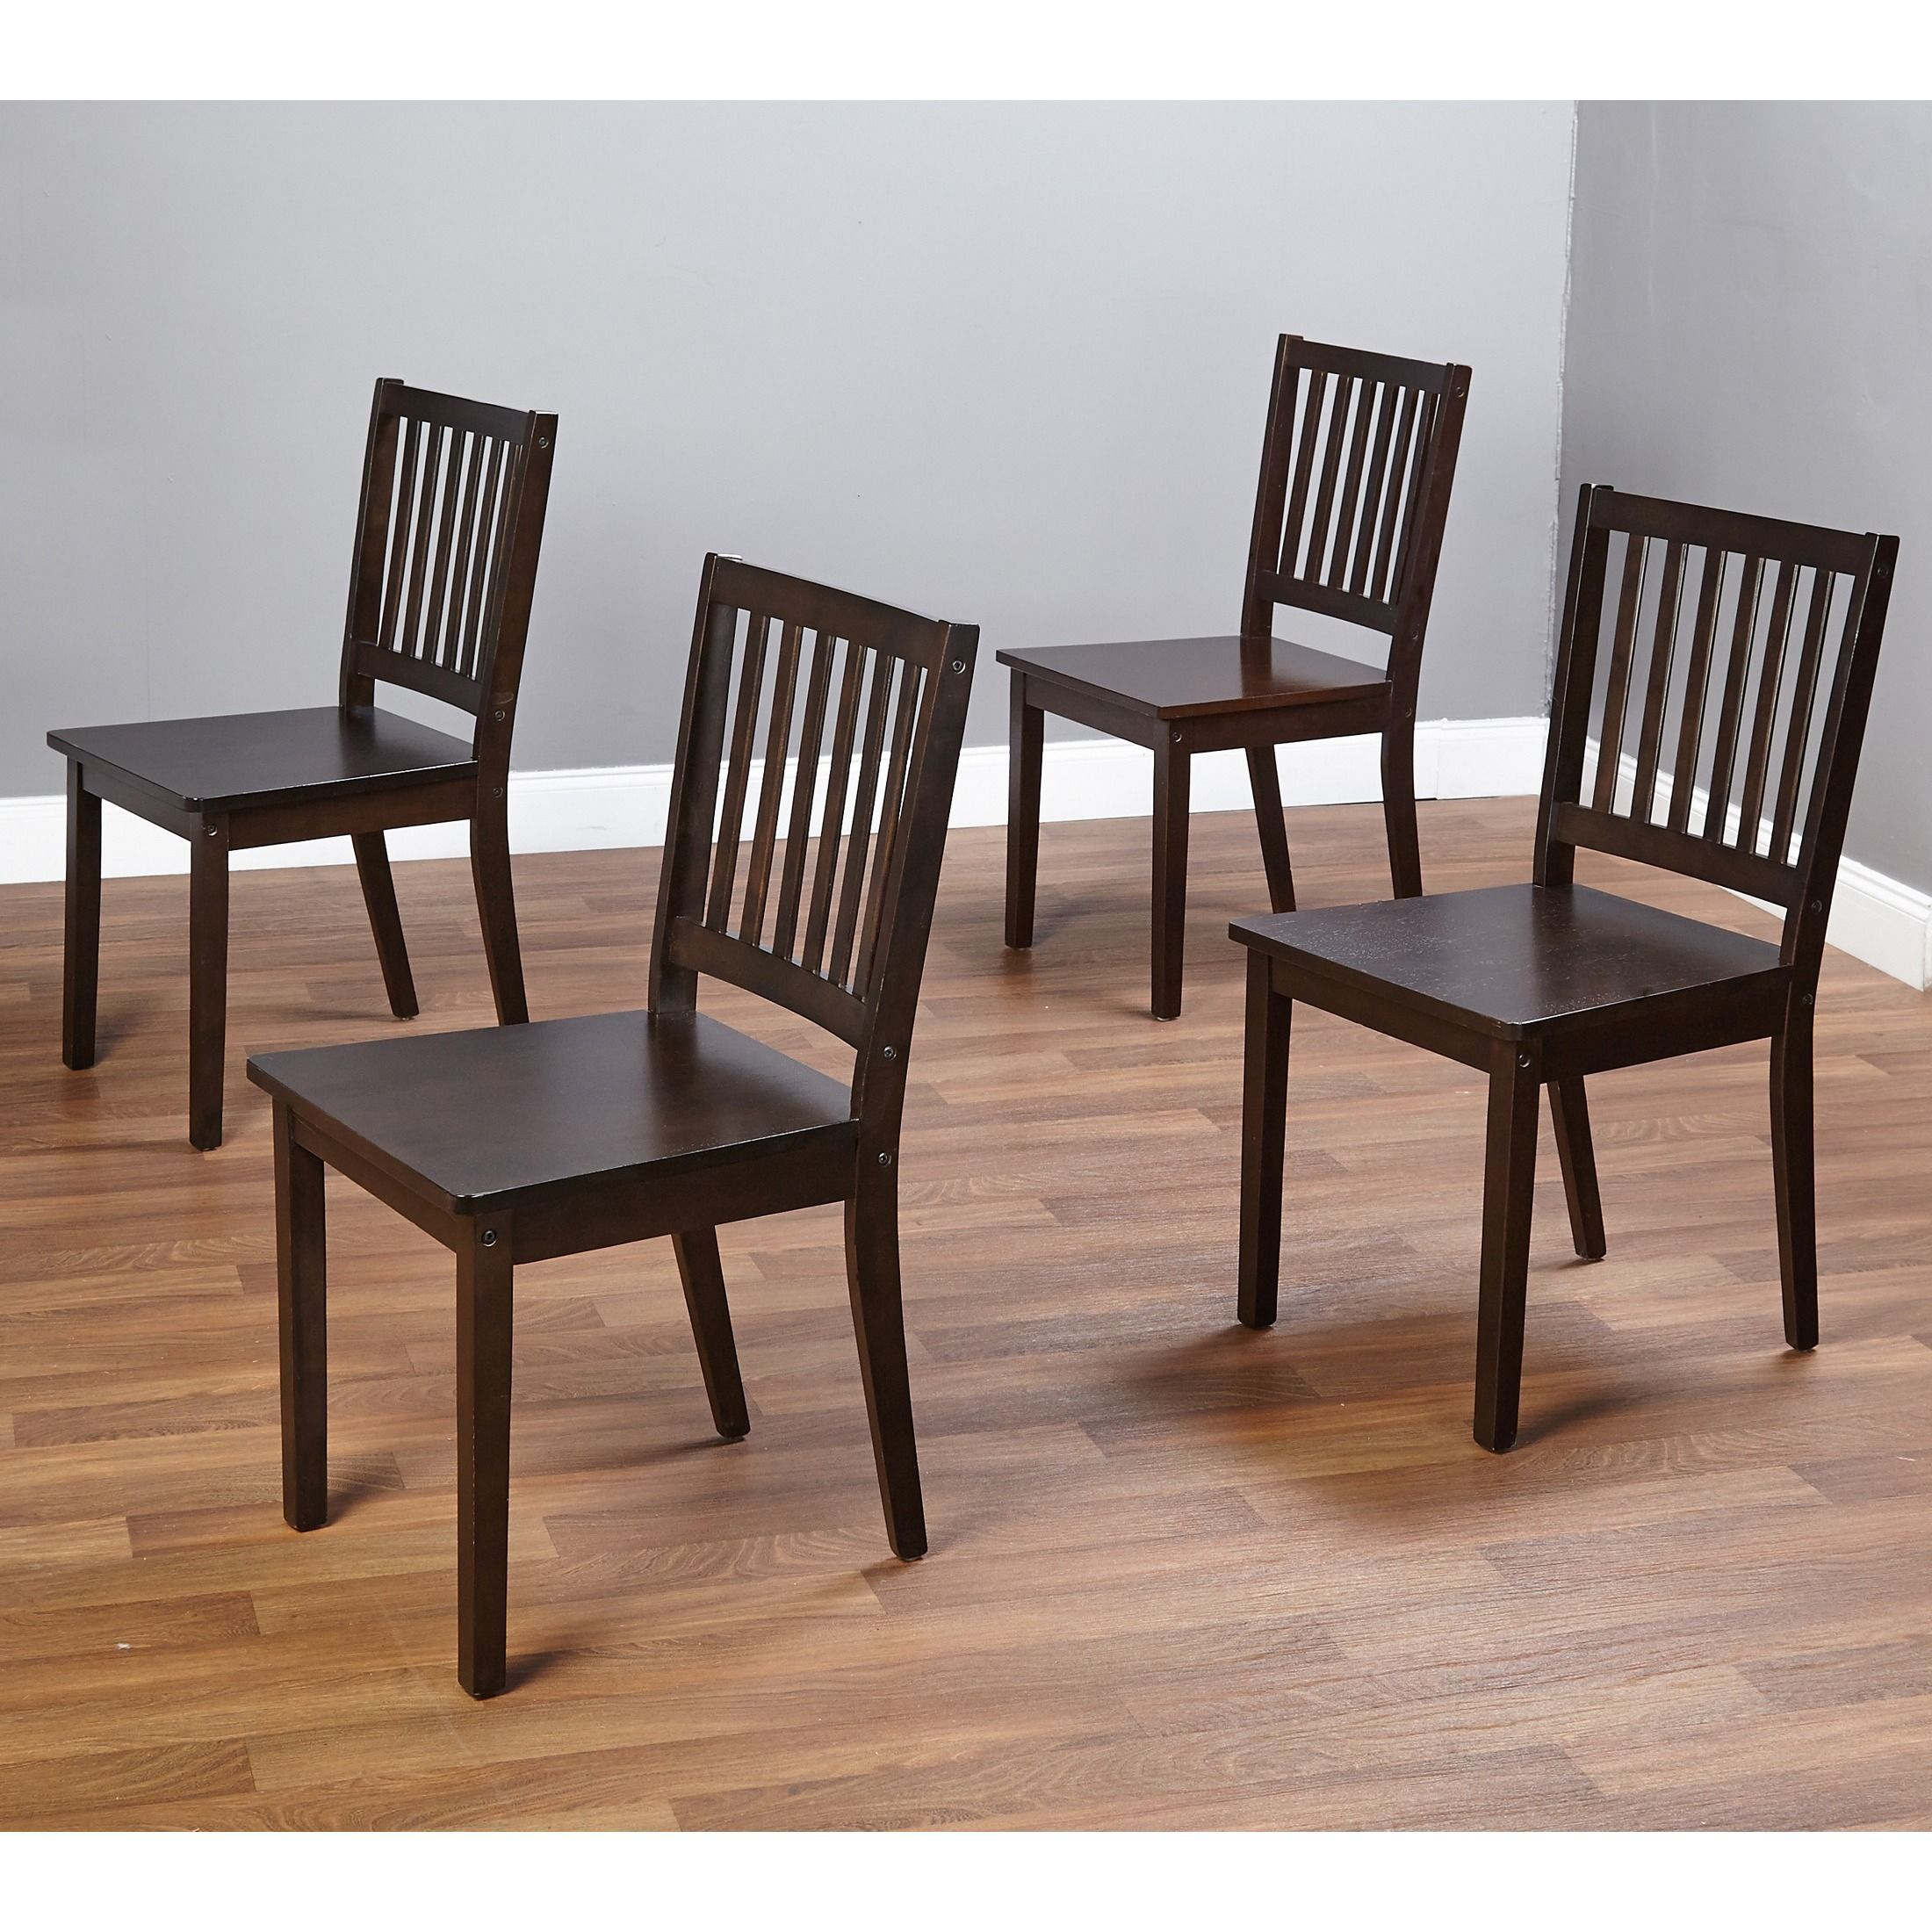 Simple Living Slat Espresso Rubberwood Dining Chairs Set of 4 by